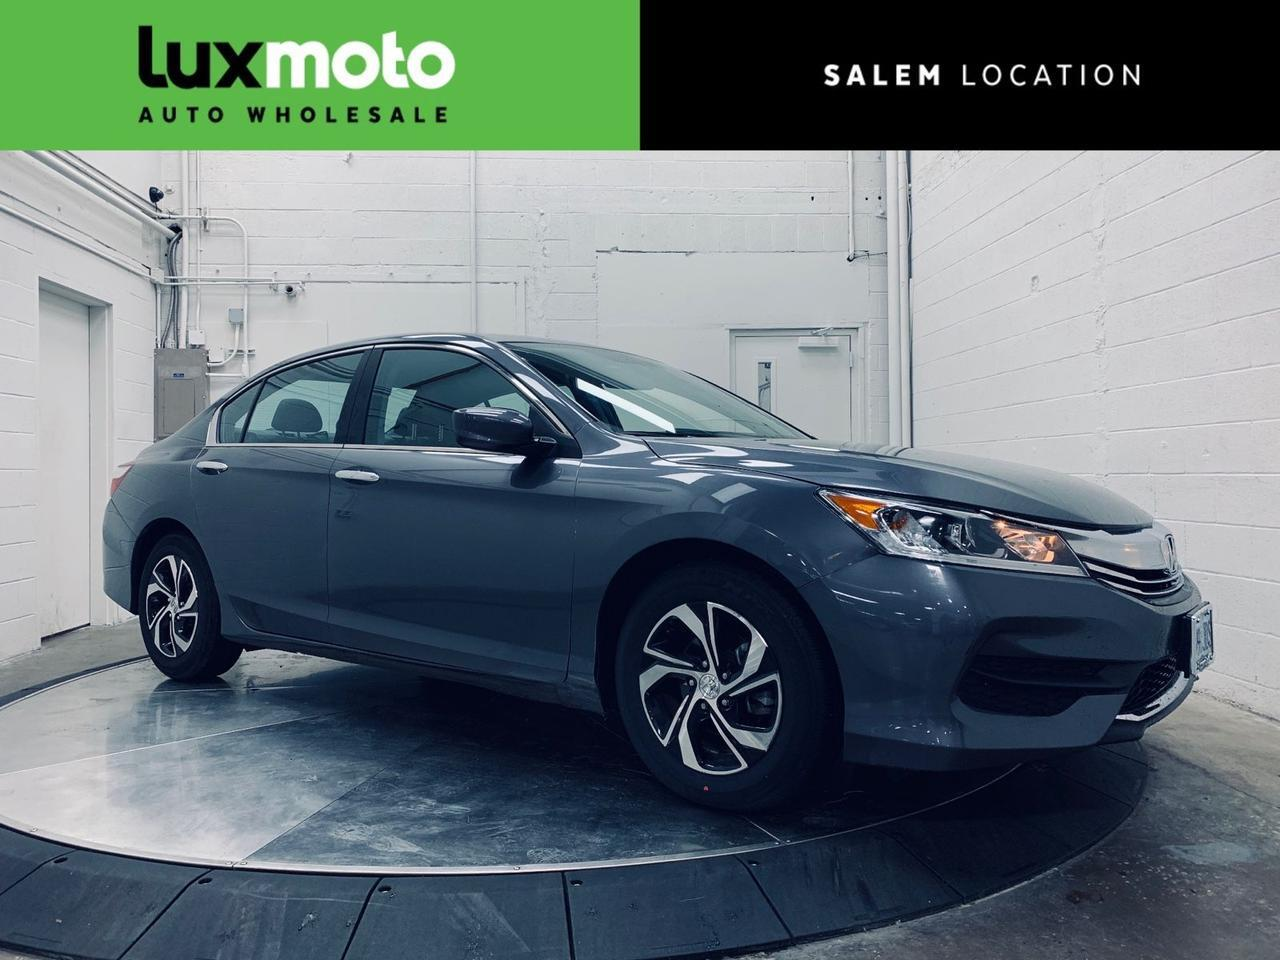 2016 Honda Accord Sedan LX Backup Cam Locally Owned Clean Carfax Portland OR